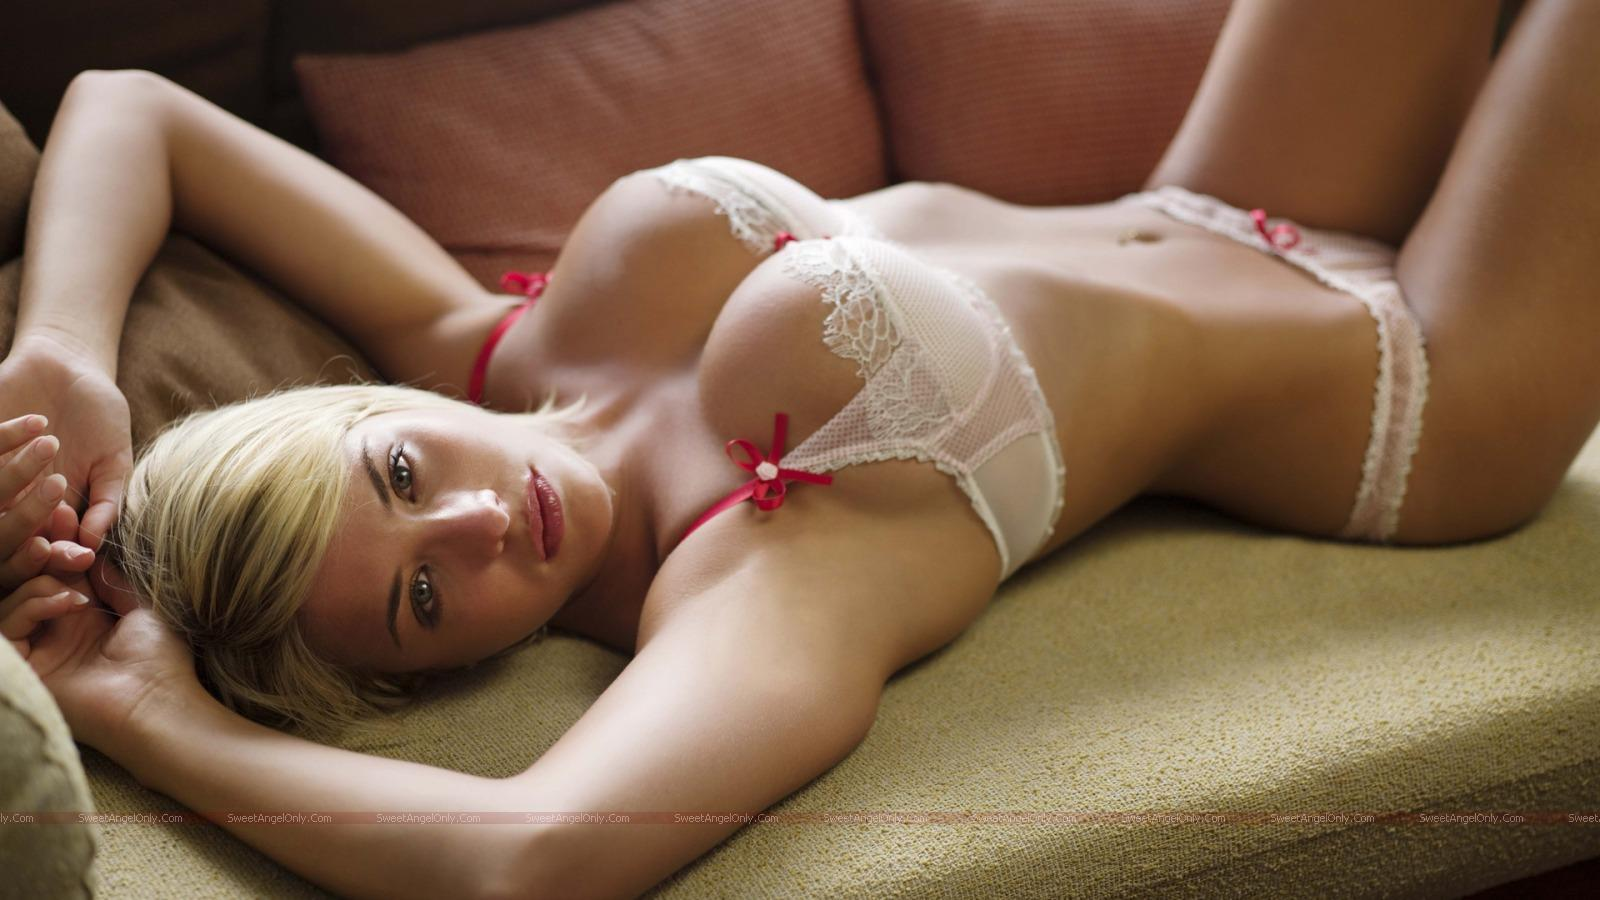 http://2.bp.blogspot.com/_jJPqWg6V3Y8/TTwfXfhqm7I/AAAAAAAADws/tY6rs8_Q79Q/s1600/hollywood_hot_actress_wallpapers_83_01.jpg